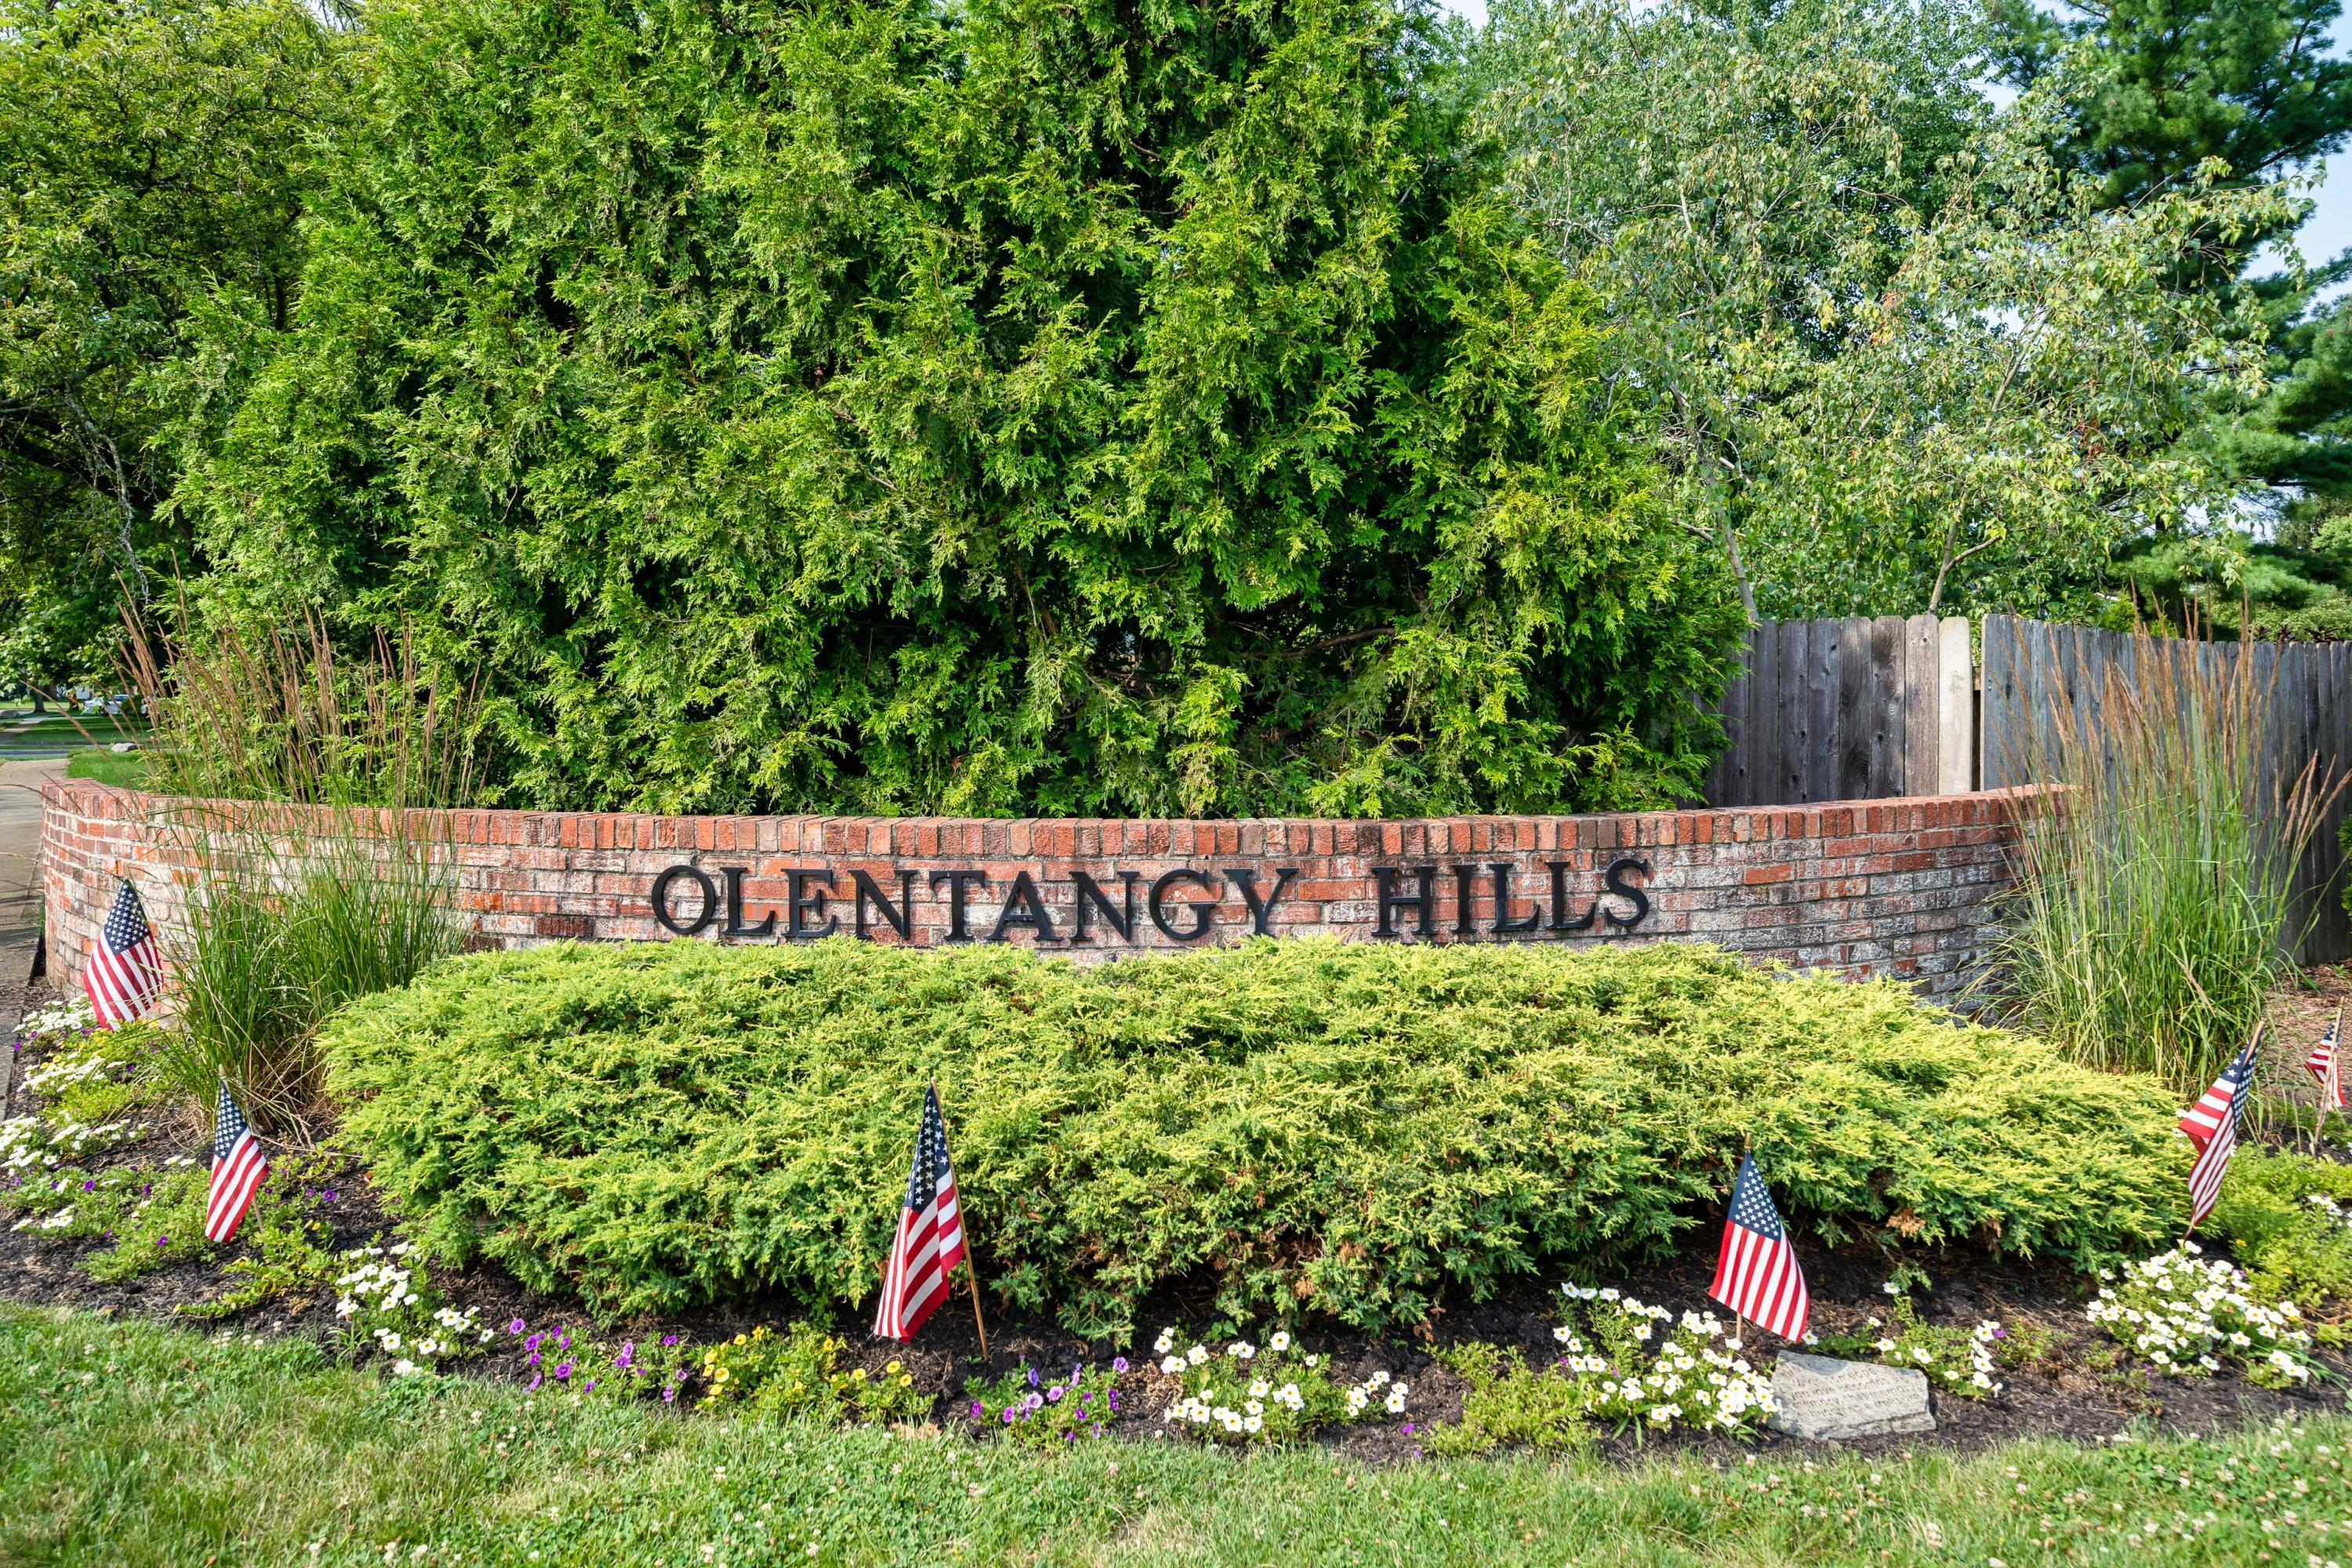 Located in Olentangy Hills